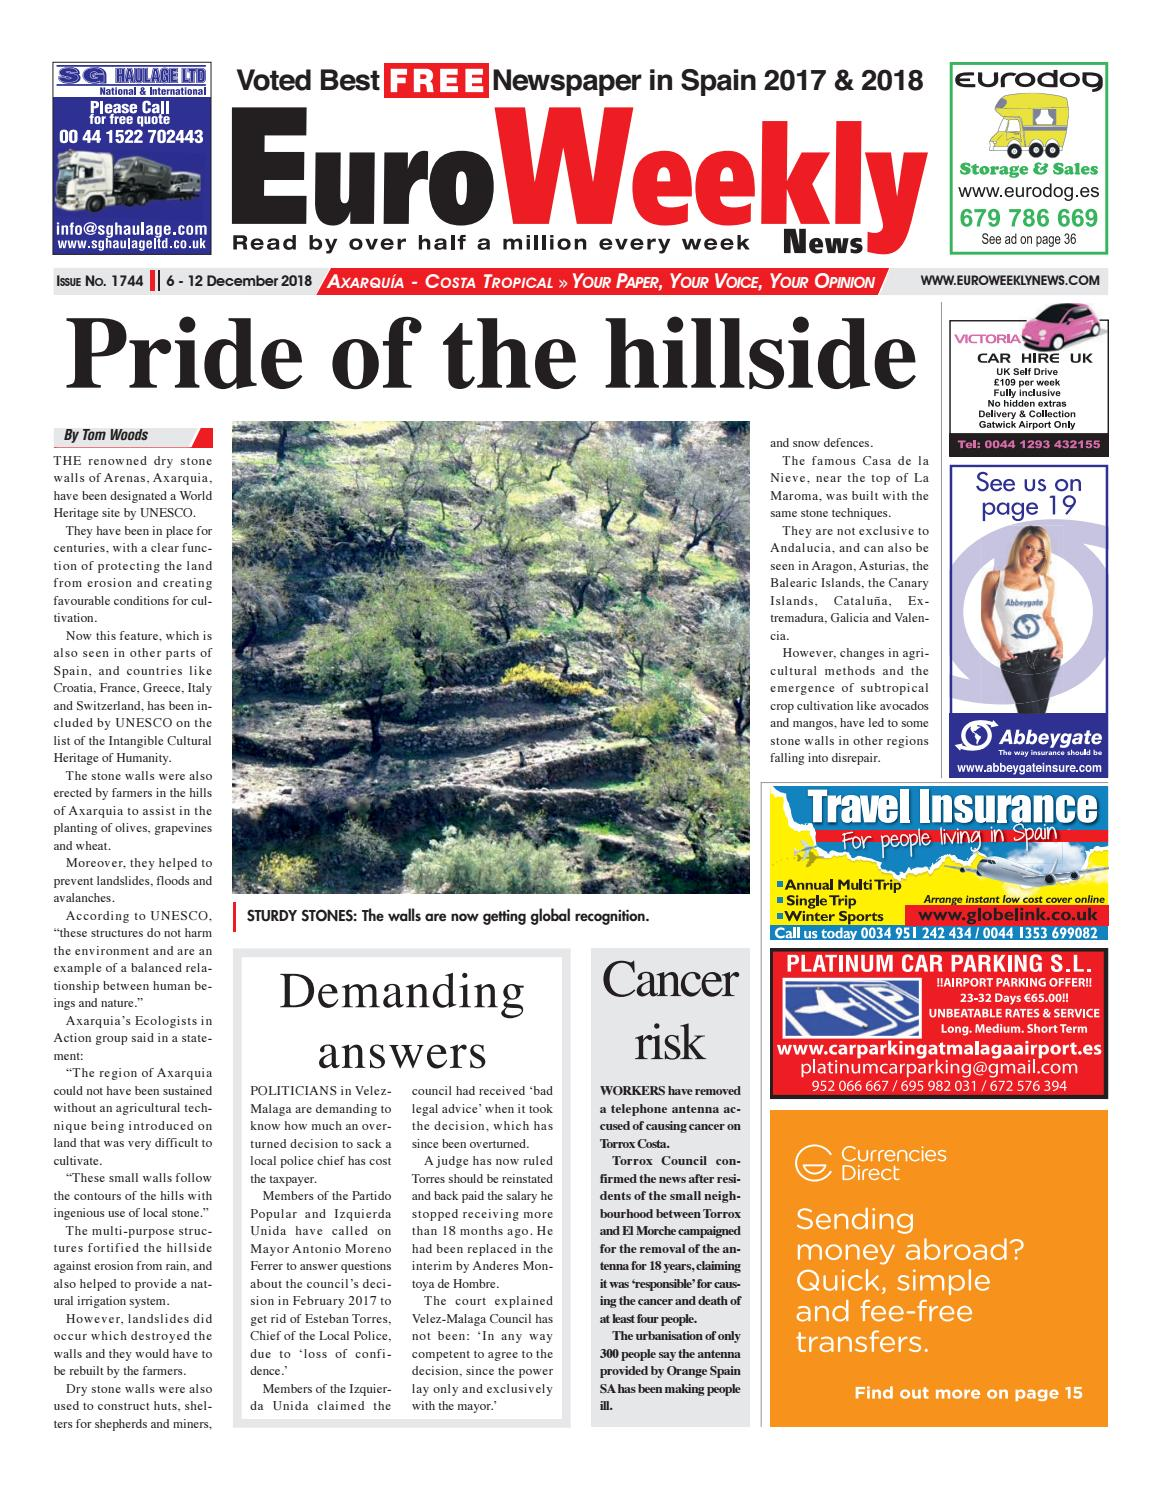 Euro Weekly News - Axarquia 6-12 December 2018 Issue 1744 by